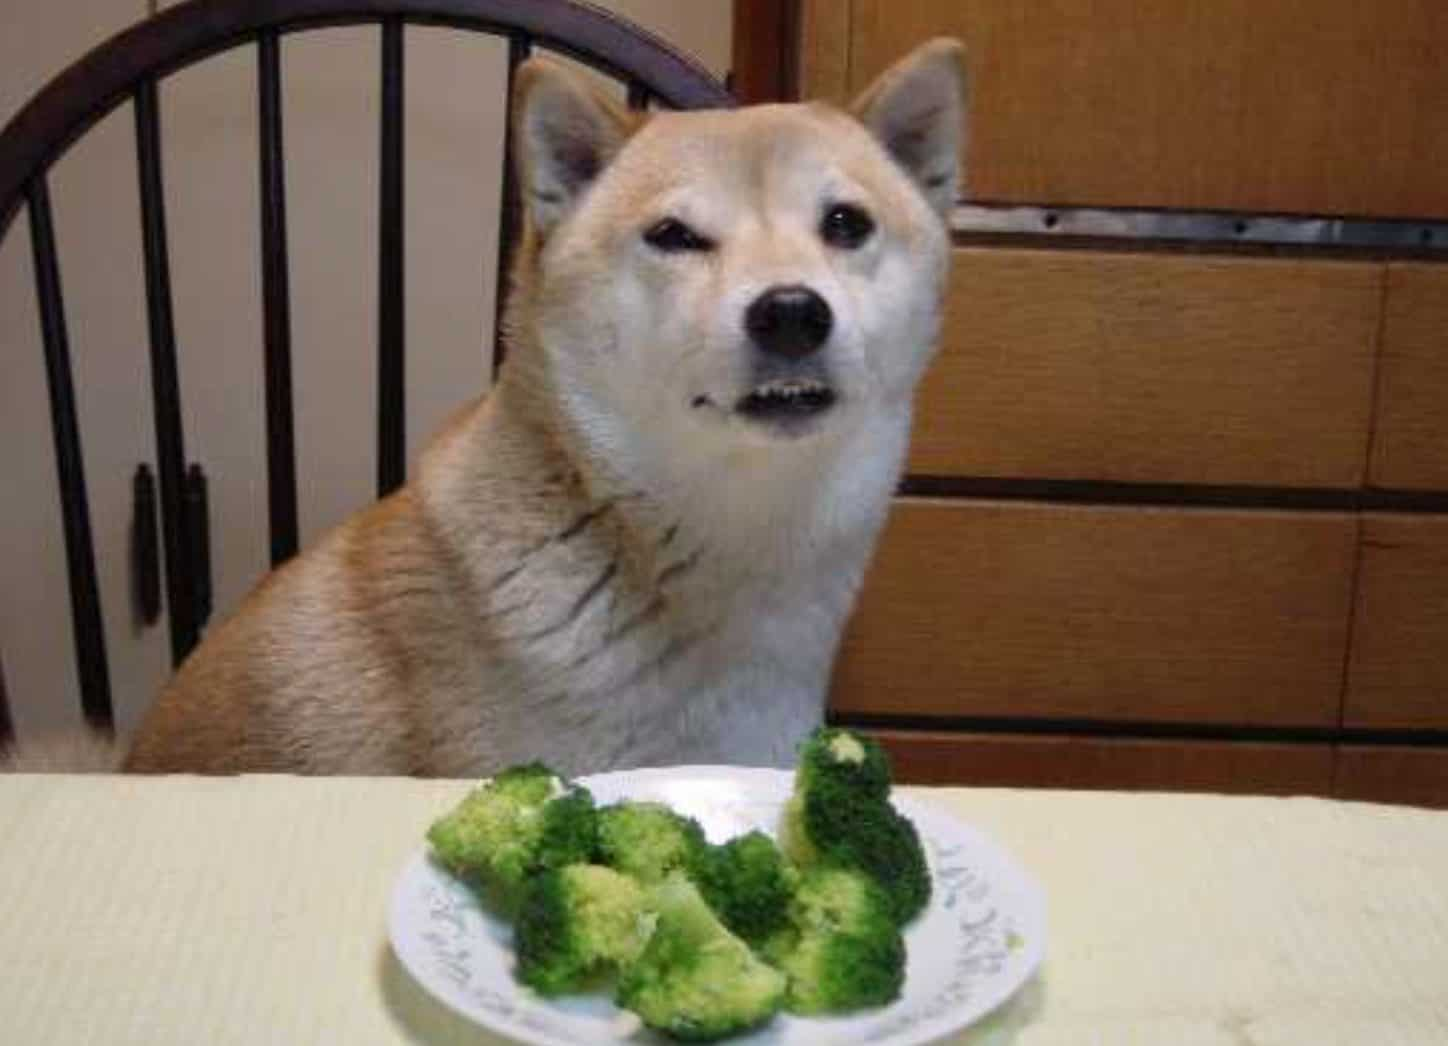 There may be several risks and side effects if your dog eats too much broccoli.